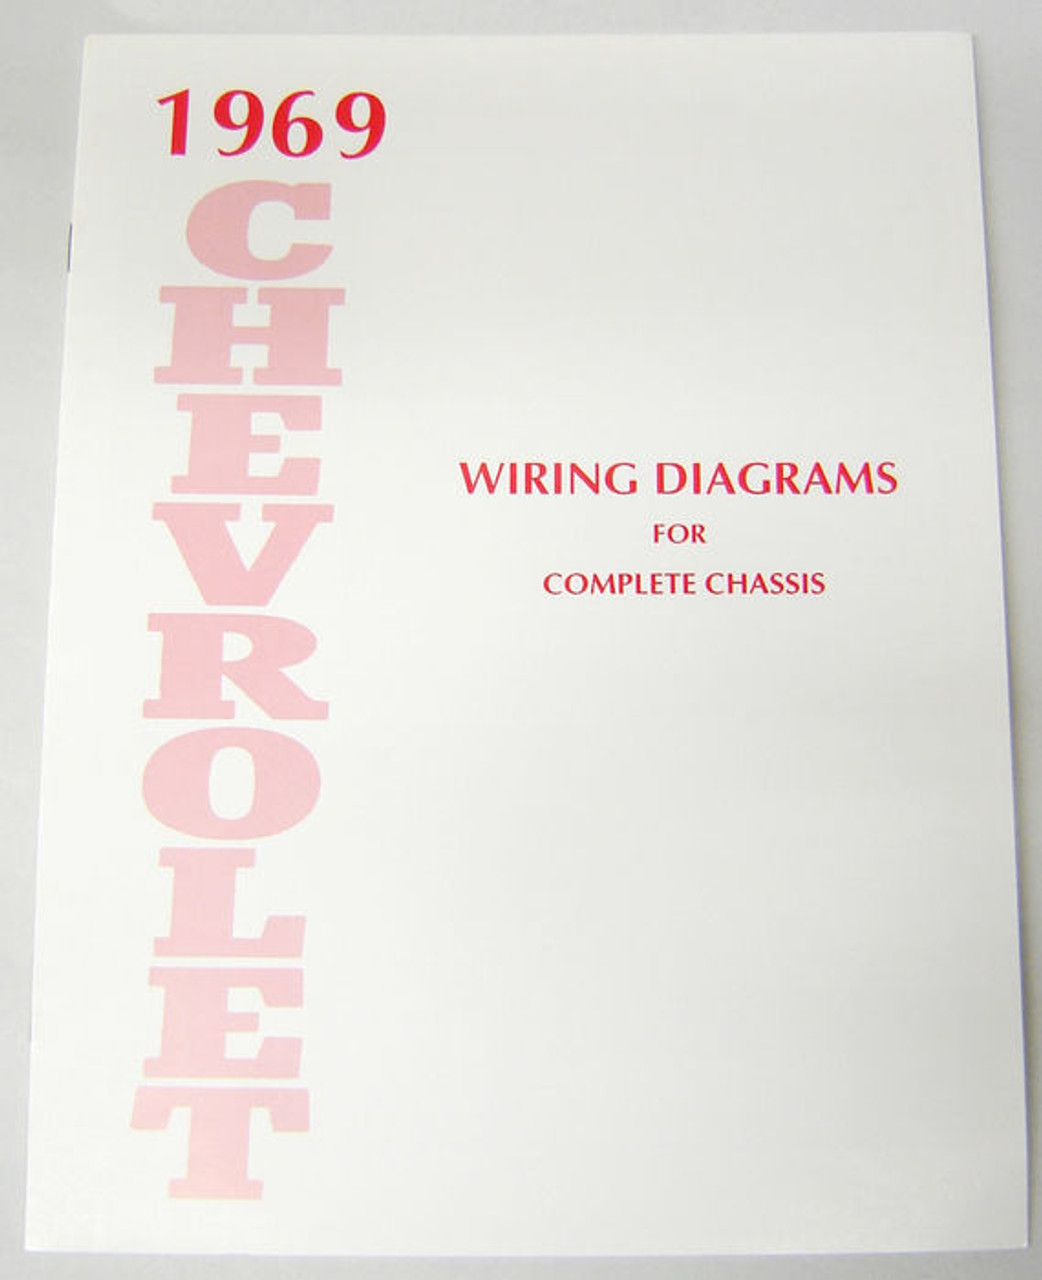 69 chevy impala electrical wiring diagram manual 1969 i 5 on 1968 Camaro Wiring Diagram Chevy TBI Wiring Harness for 69 chevy impala electrical wiring diagram manual 1969